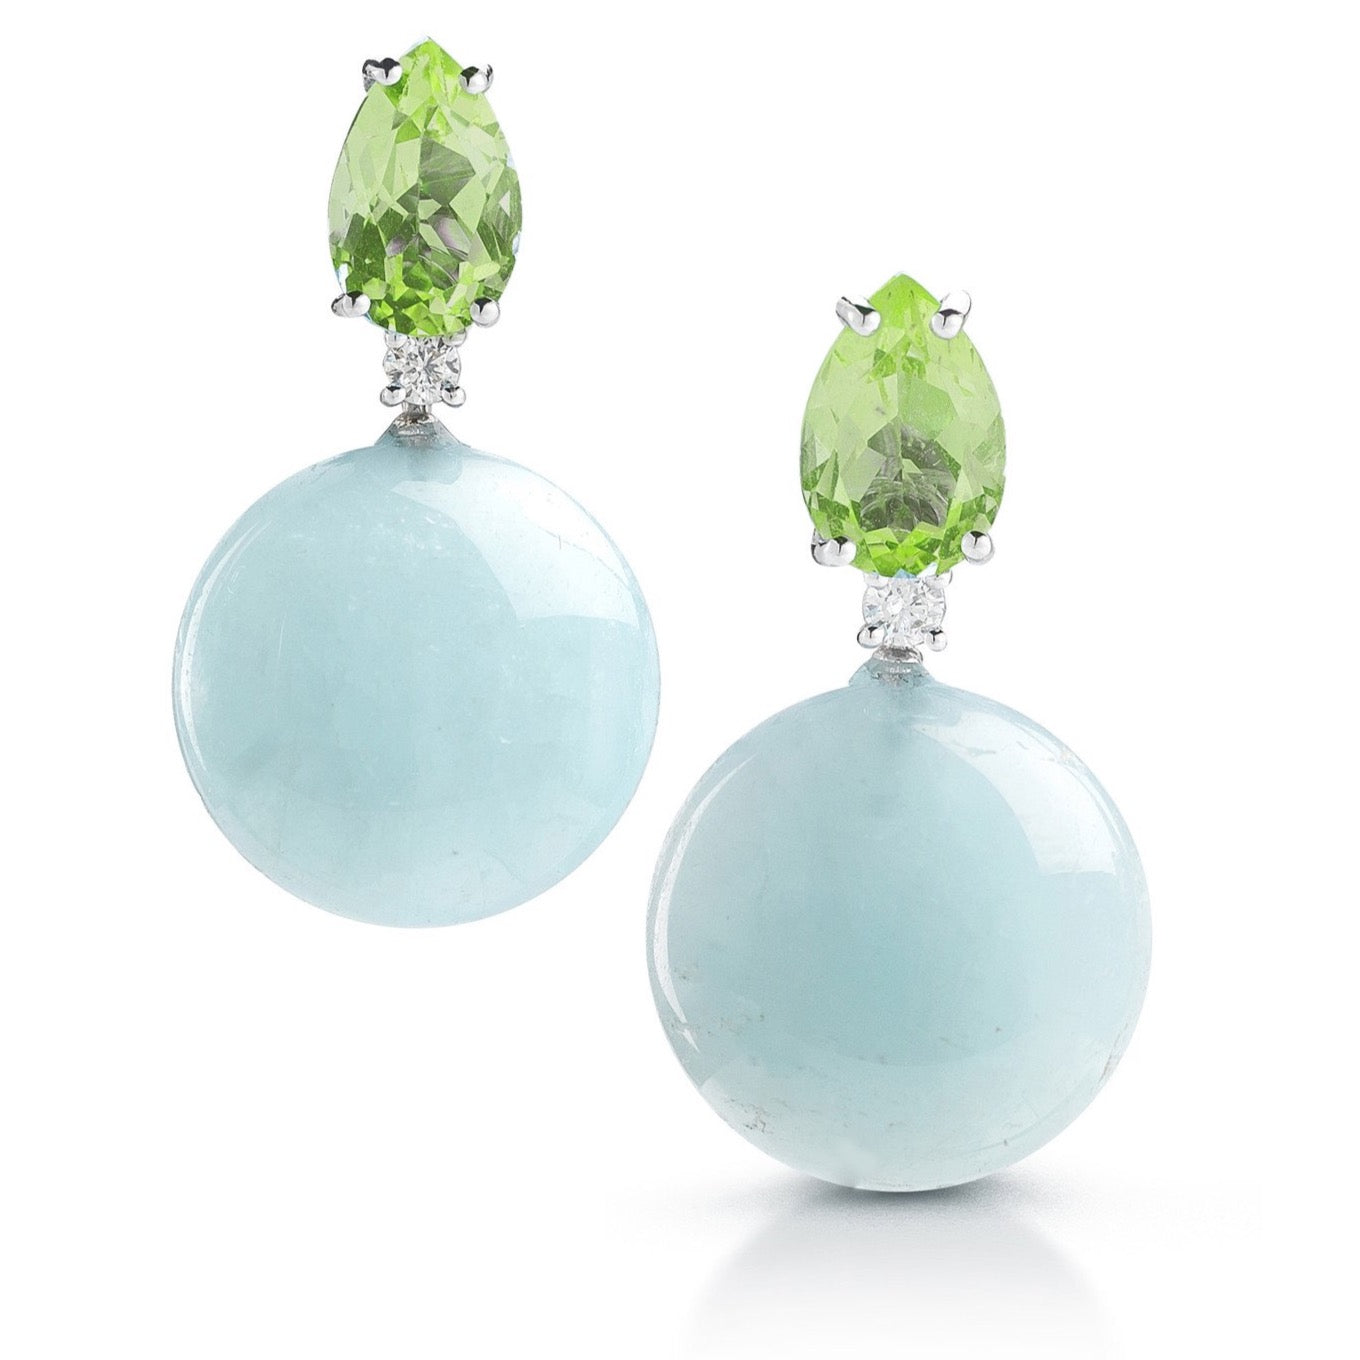 A-&-FURST-BONBON-EARRINGS-PERIDOT-MILKY-AQUAMARINE-O1200BOH